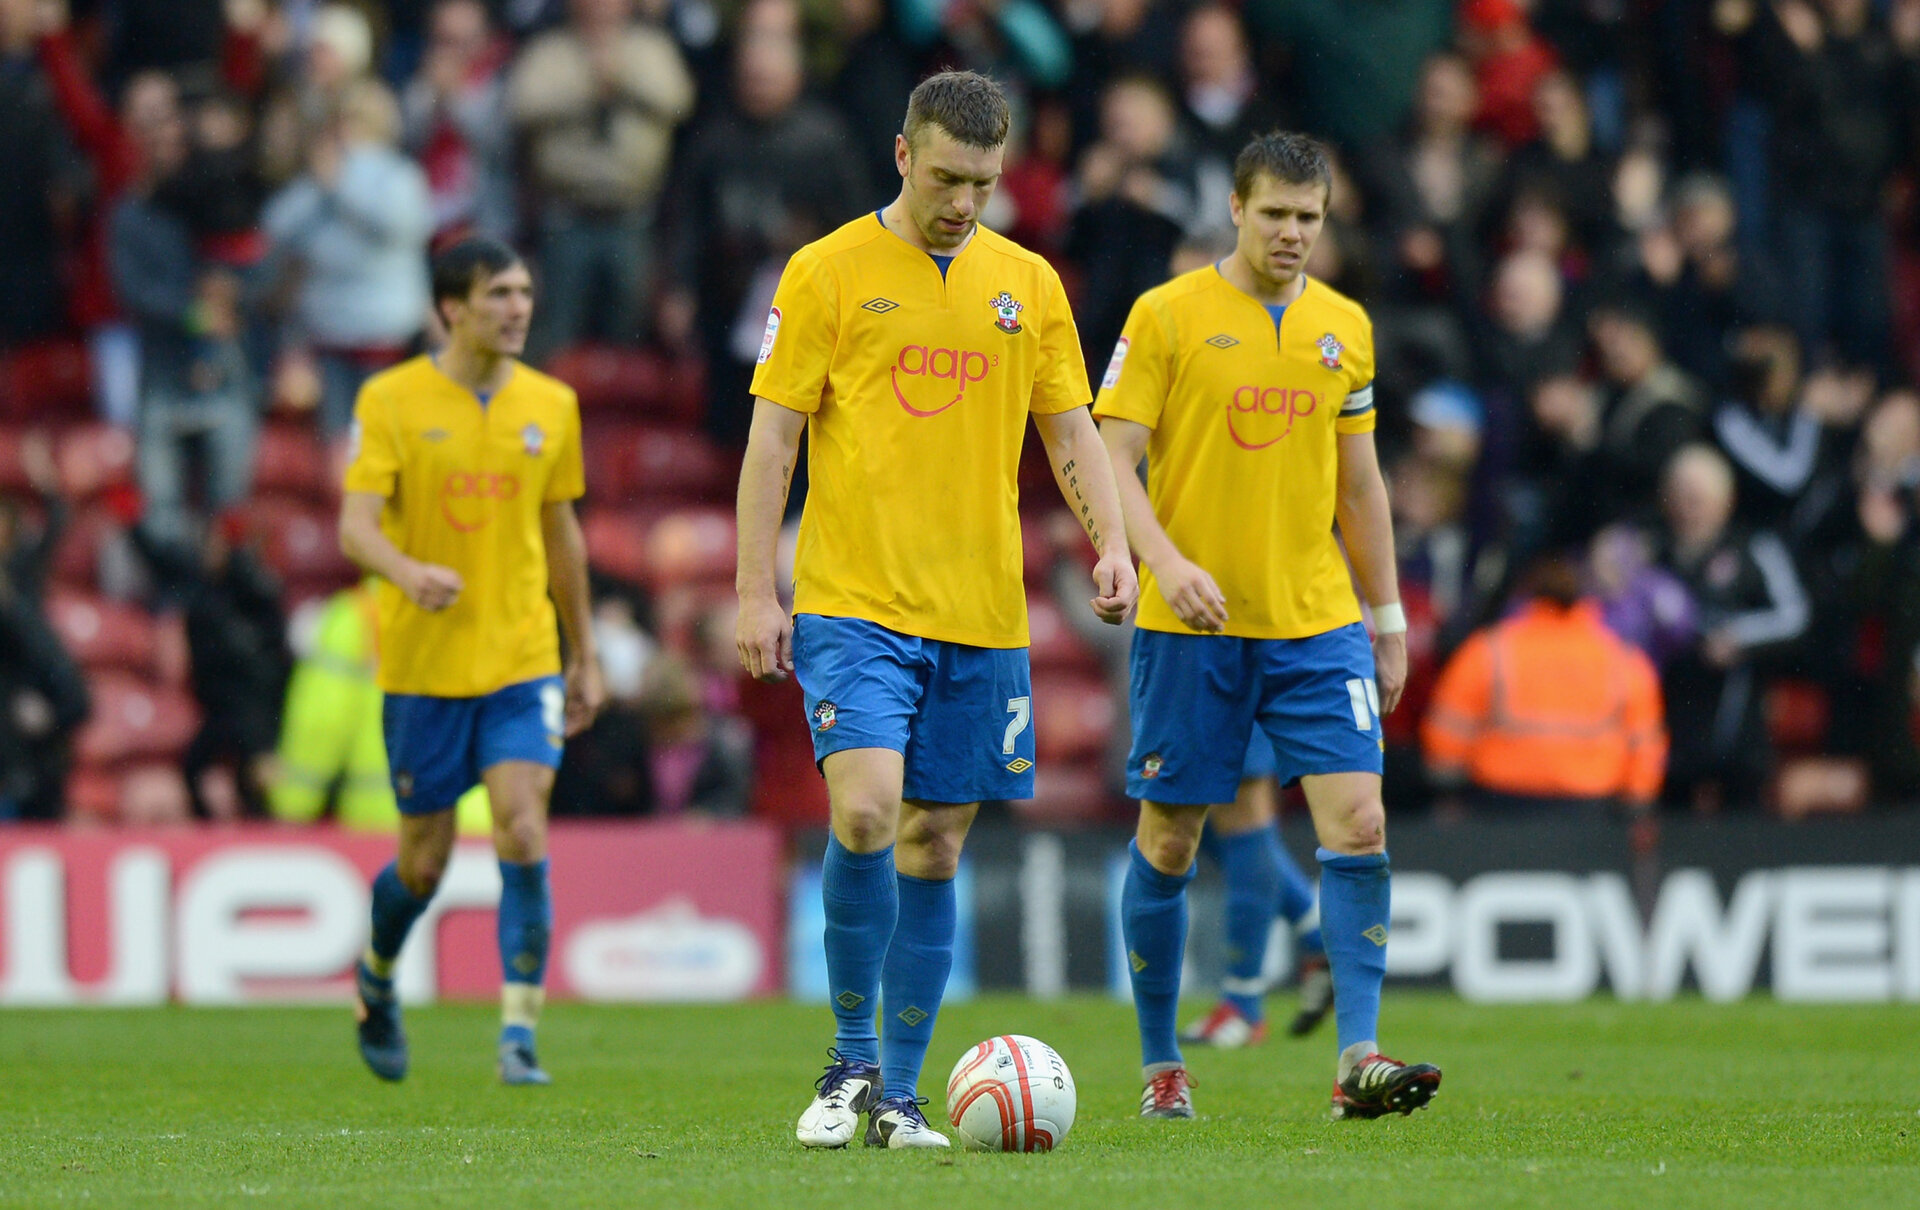 MIDDLESBROUGH, ENGLAND - APRIL 21:  Rickie Lambert and Dean Hammond of Southampton react after Middlesbrough's second goal during the npower Championship between Middlesbrough and Southampton at Riverside Stadium on April 21, 2012 in Middlesbrough, England.  (Photo by Gareth Copley/Getty Images)